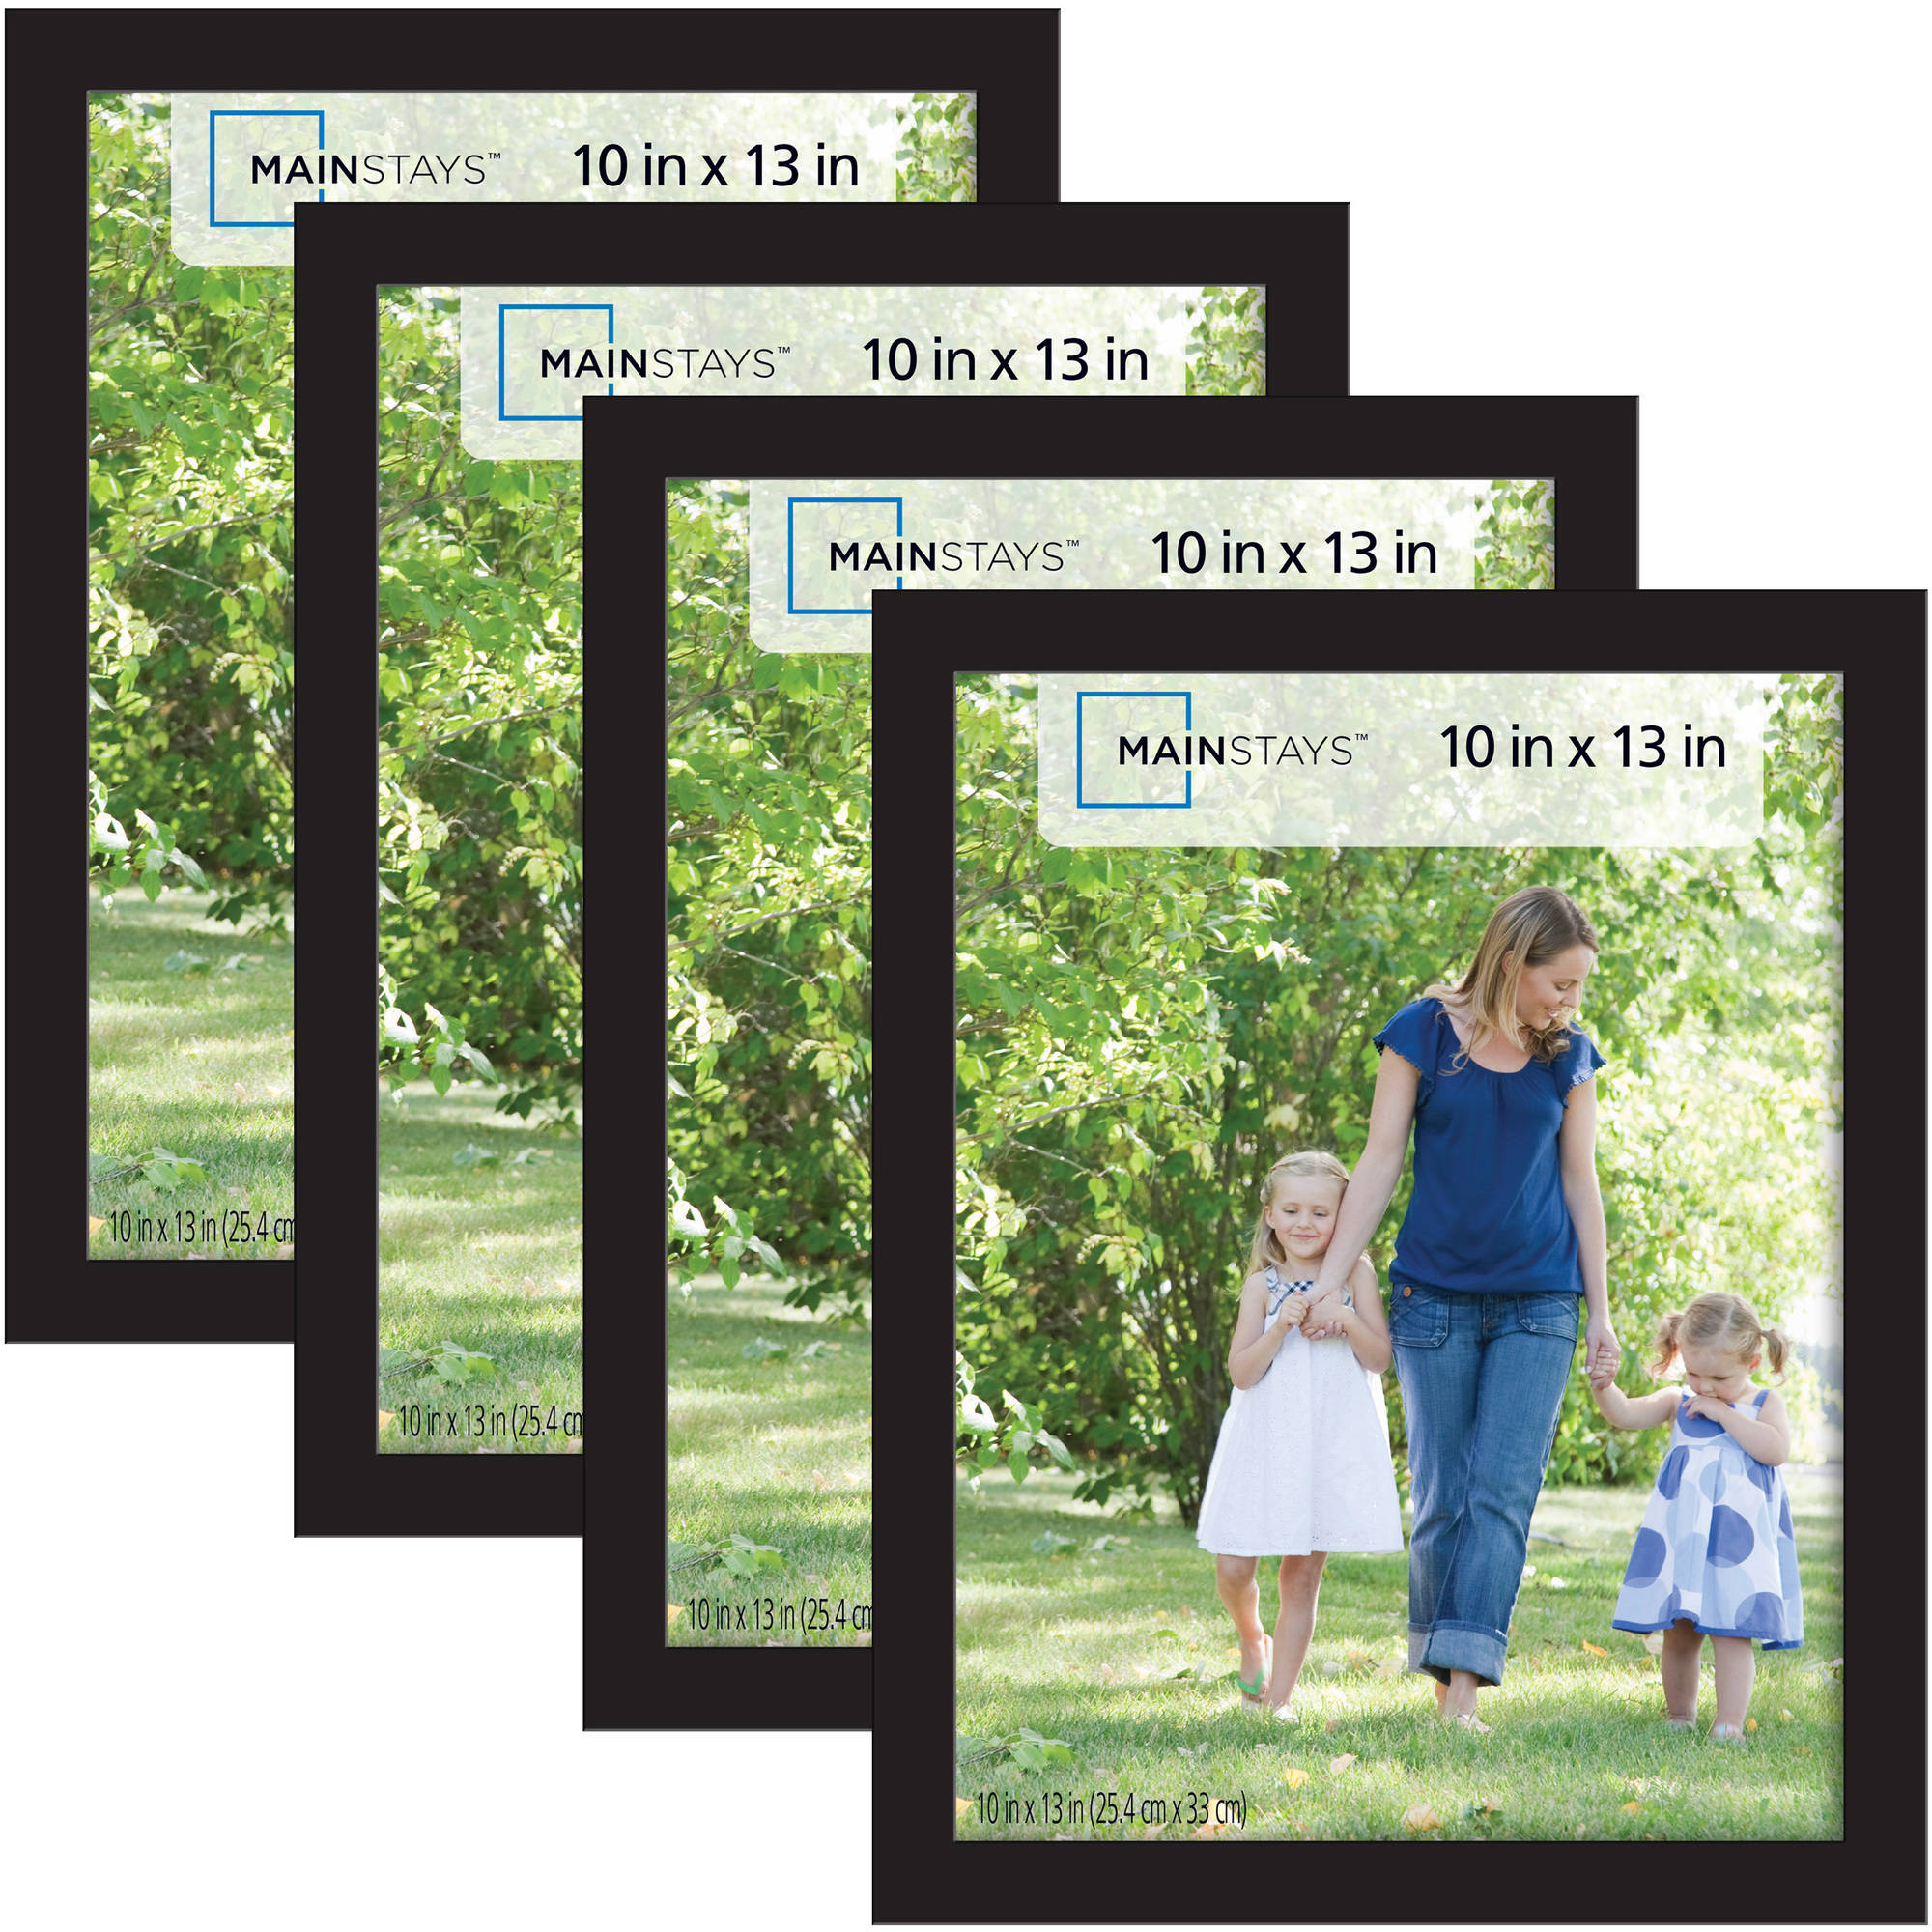 Mainstays 10x13 Picture Frames Black 4 Pack Walmartcom